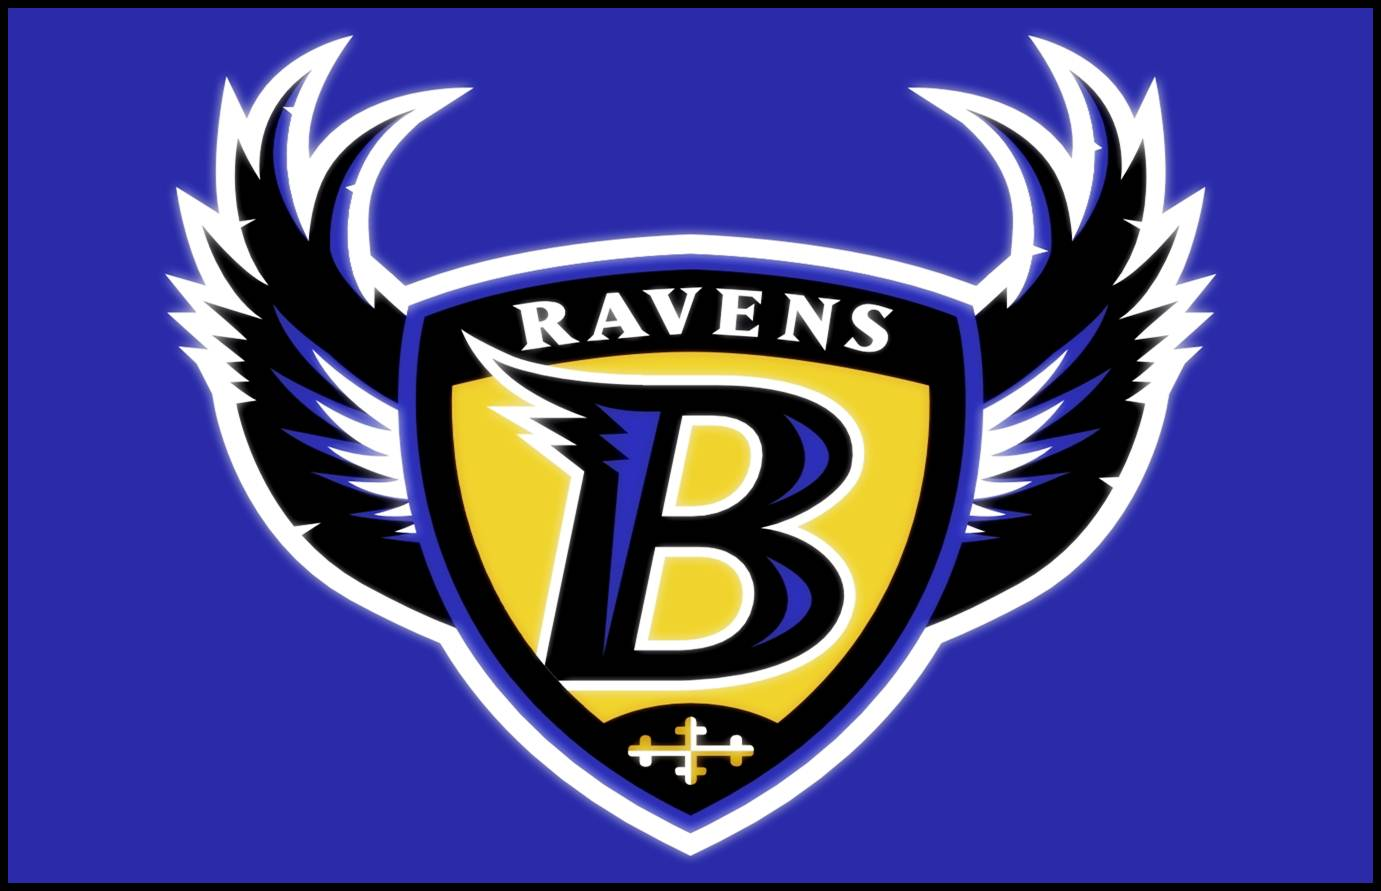 Baltimore Ravens   NFL Wallpapers NFL Wallpapers 1381x891